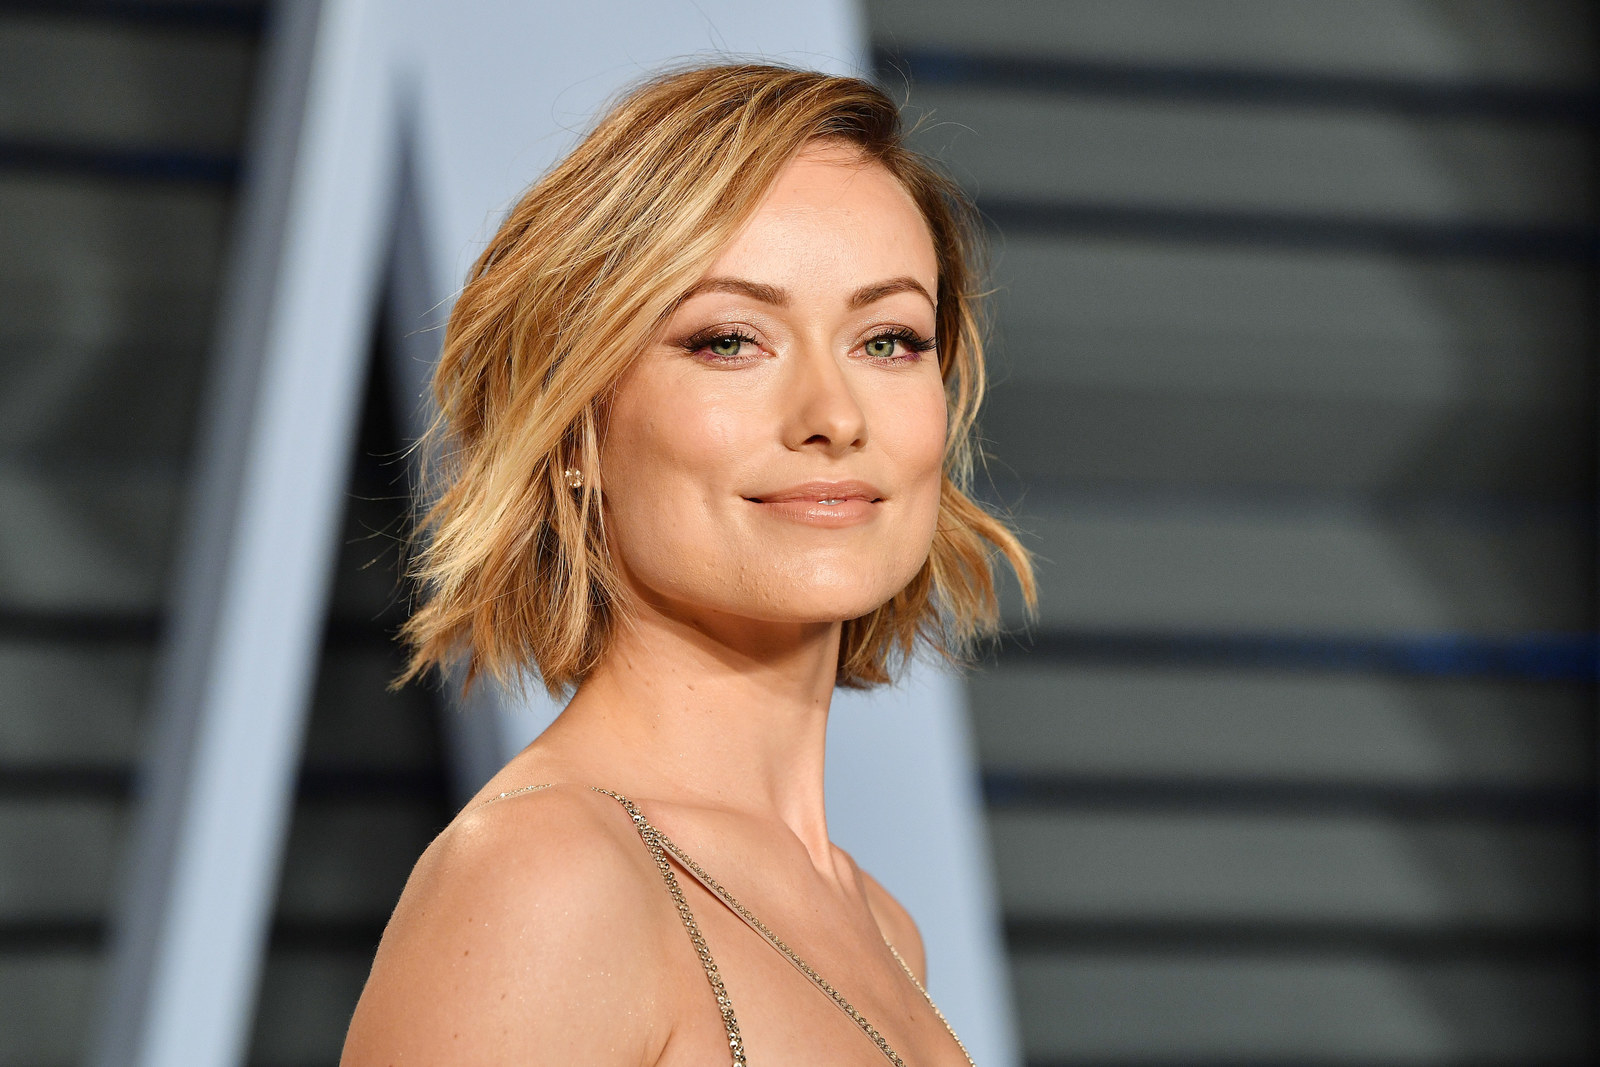 While Olivia Wilde will be 35 come March 10.